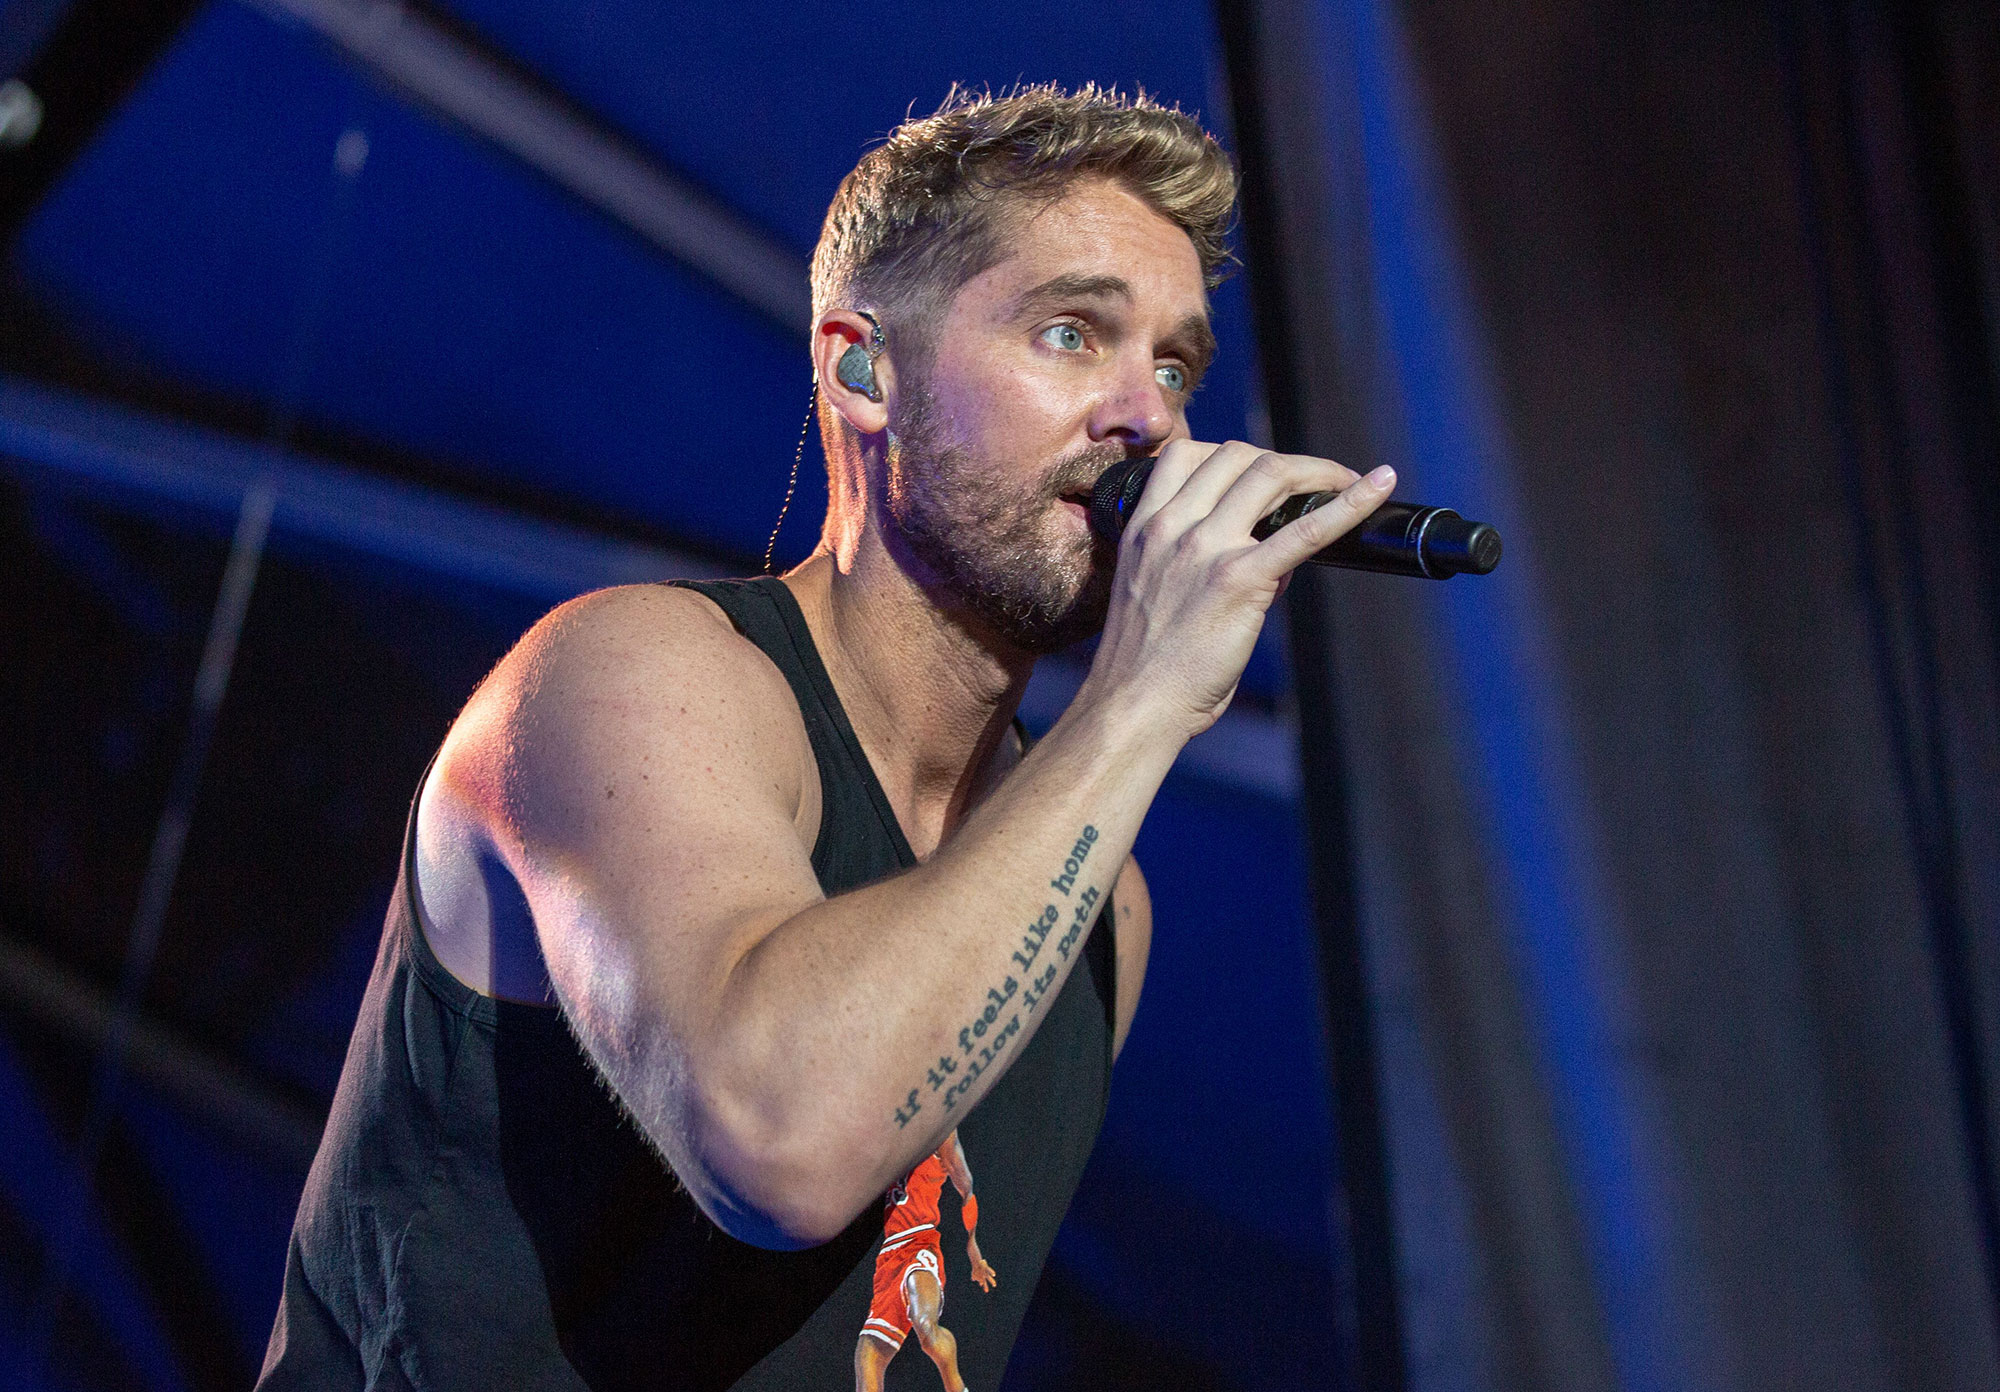 brett young announces new album ticket to l a rolling stone brett young announces new album ticket to l a rolling stone